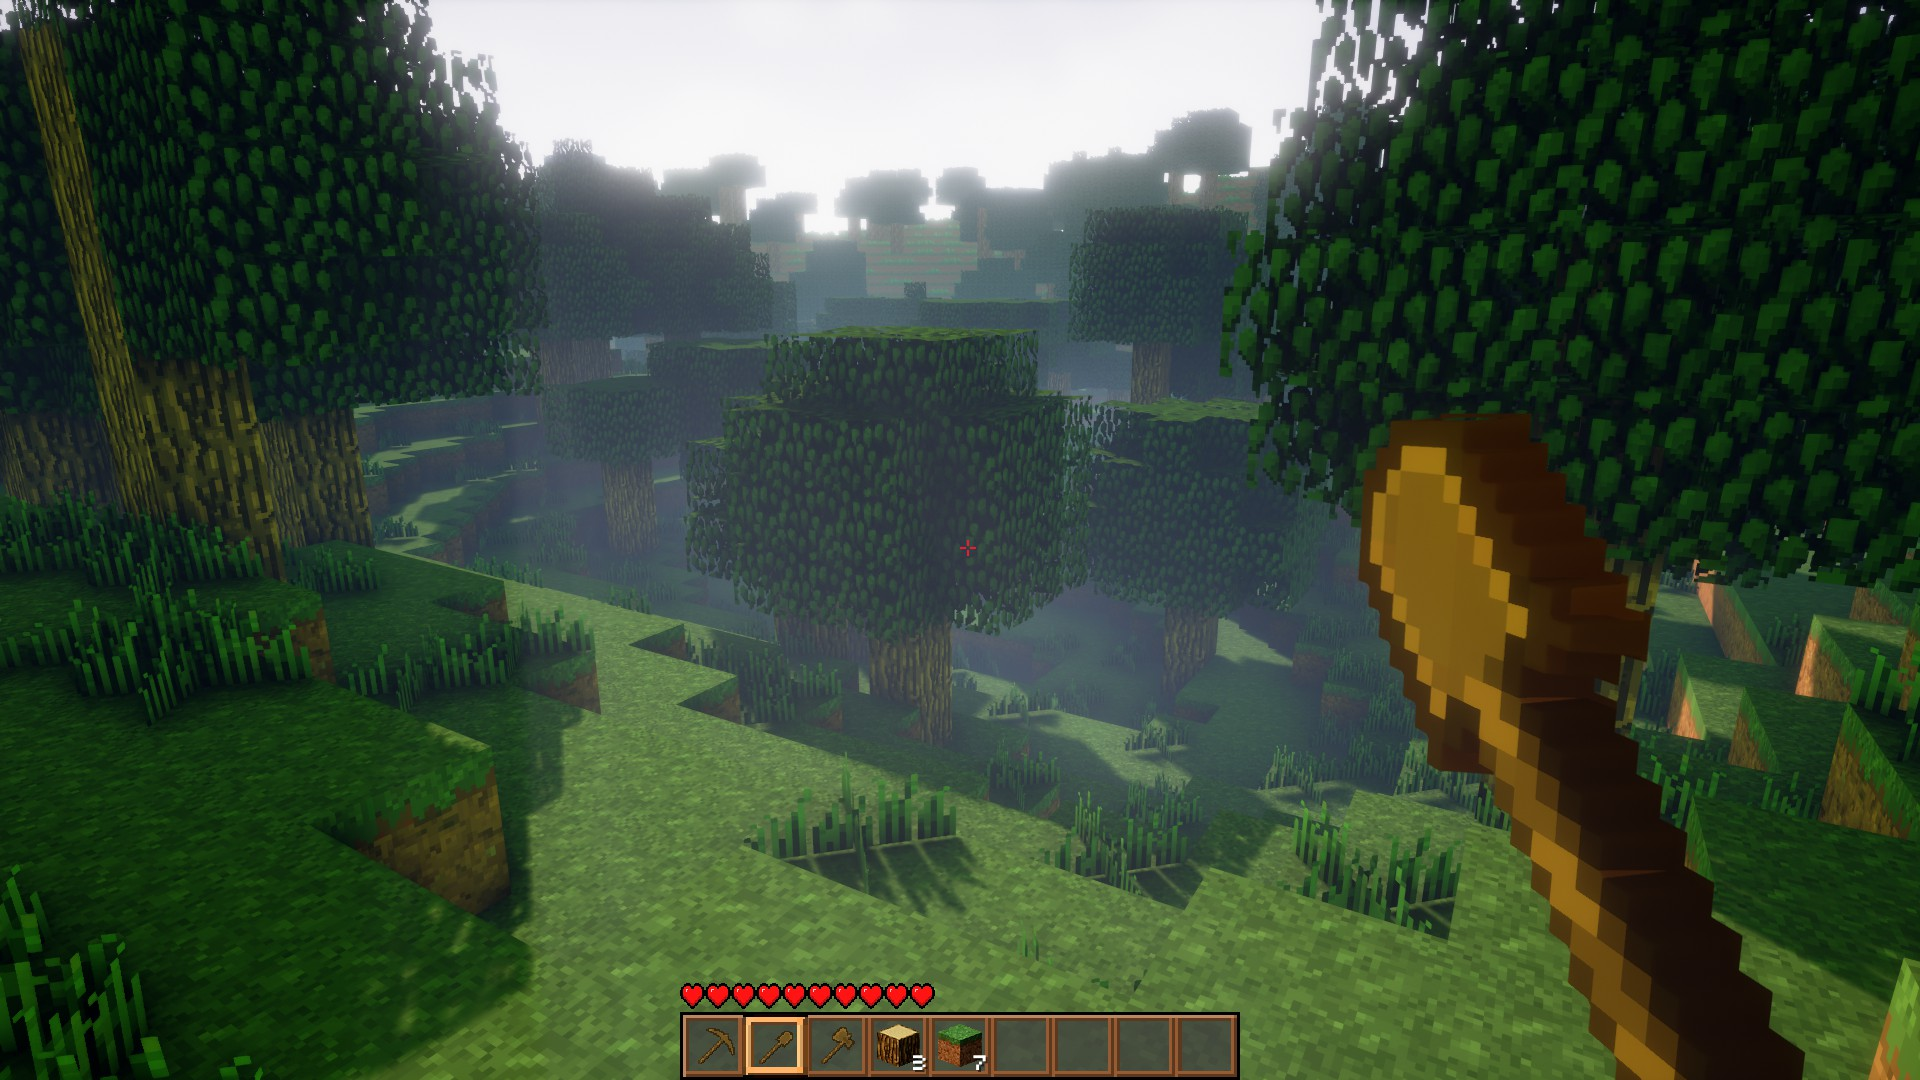 Minecraft In Unreal Engine 4 Is A Thing, Available For Download